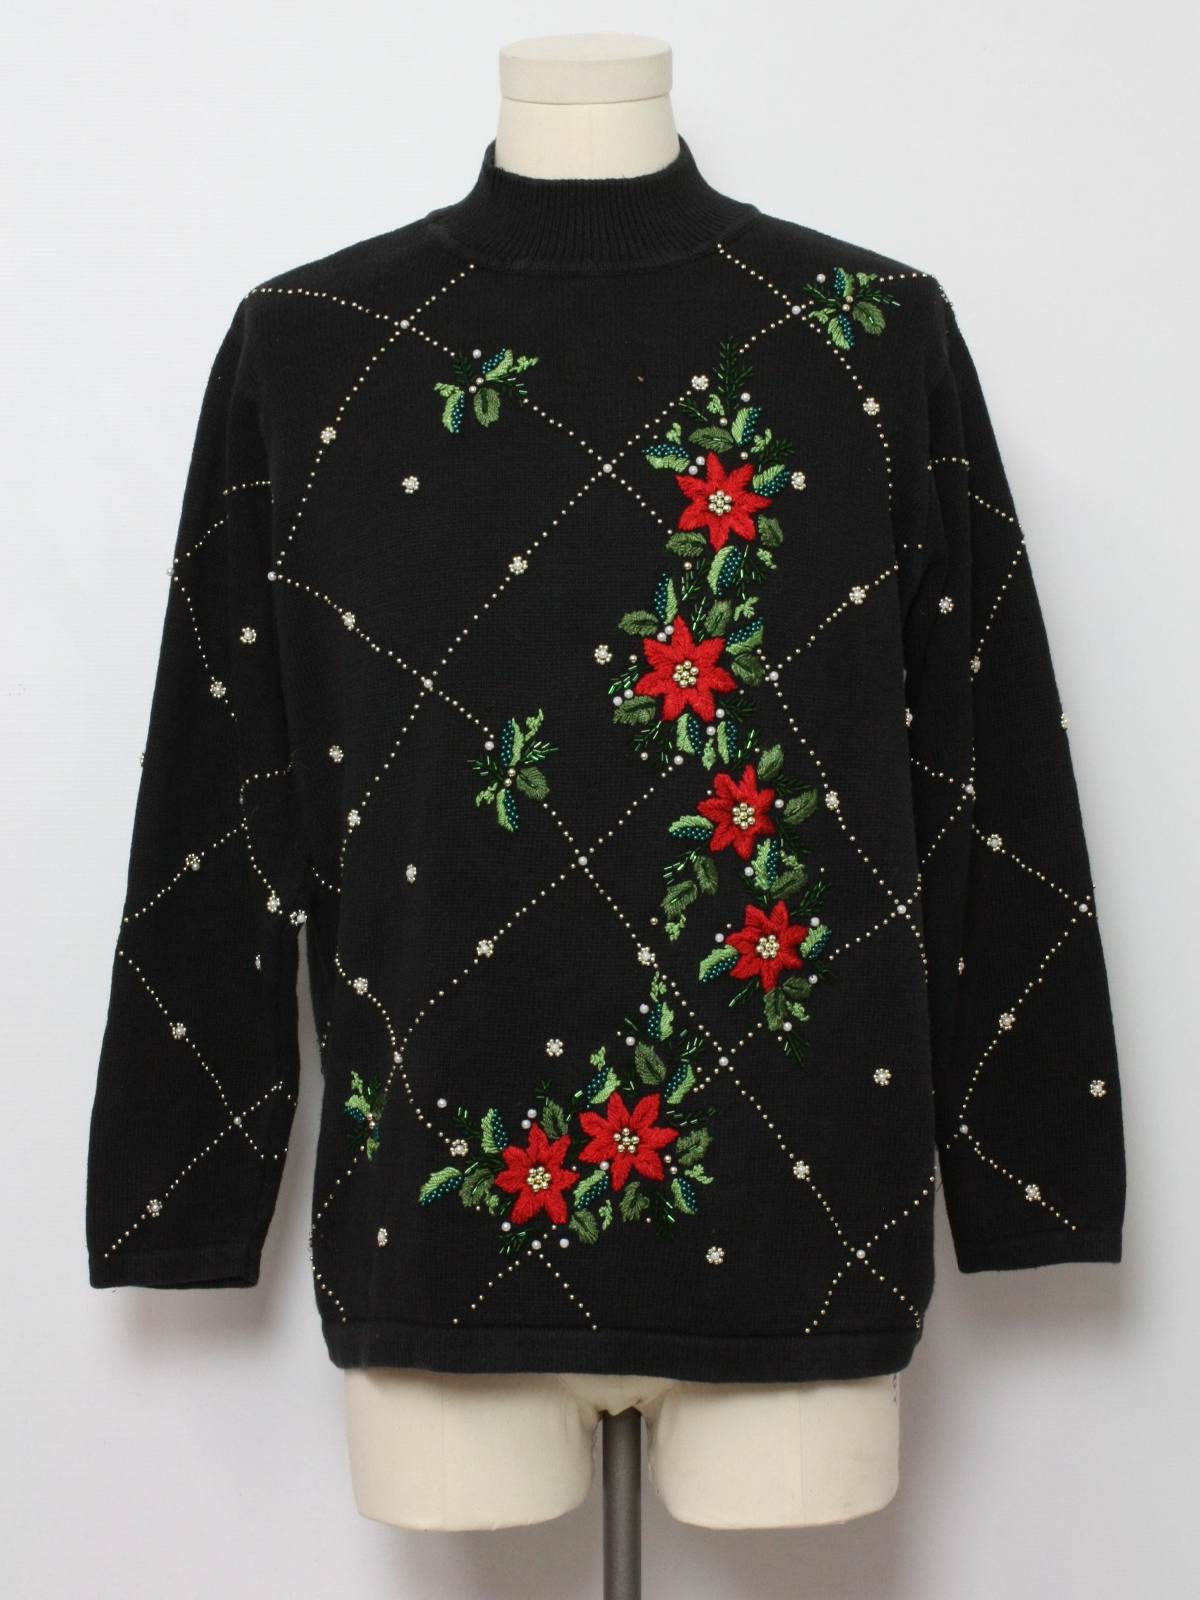 Ugly Christmas Sweater: -BP Designs- Unisex black background cotton ramie ble...